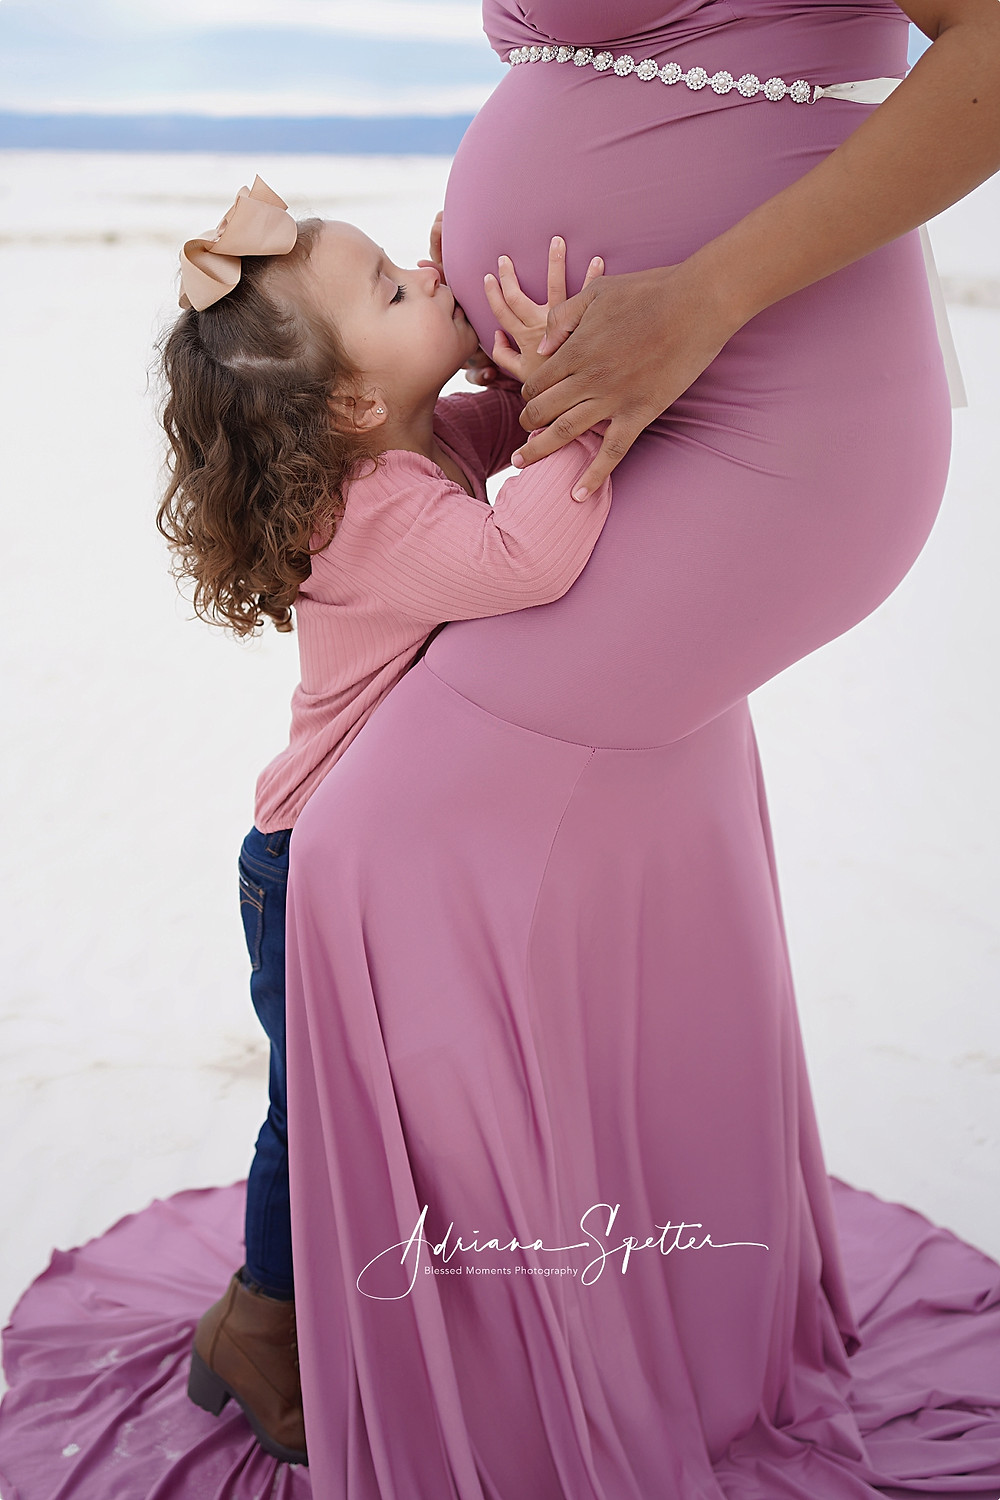 Little girl kissing her mama's pregnant belly